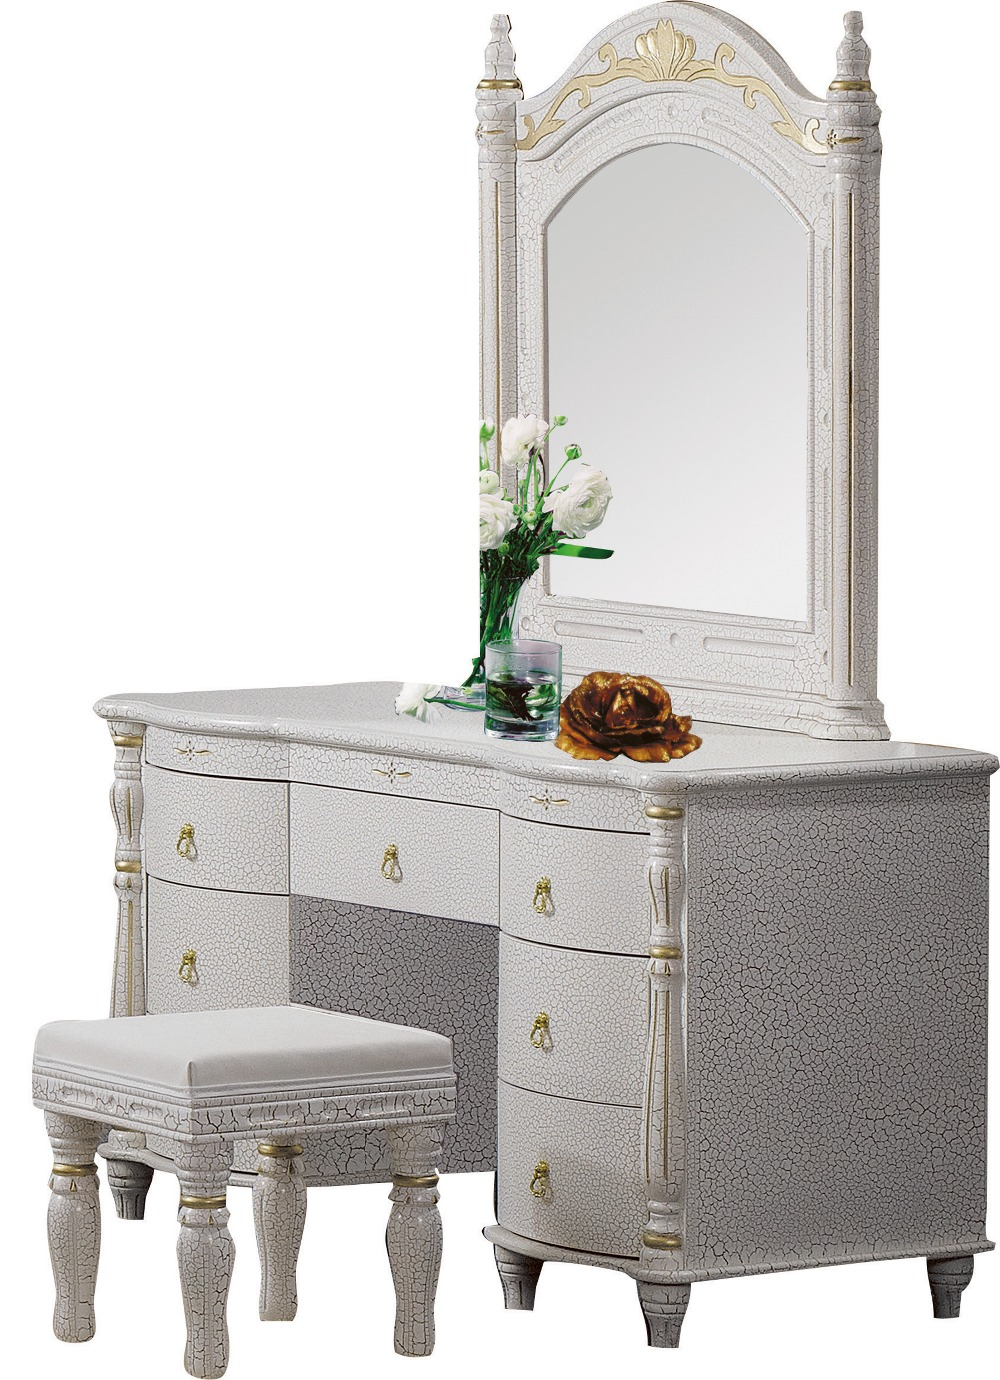 Bedroom Home Furniture Dresser Table With 7 Drawers Mirror